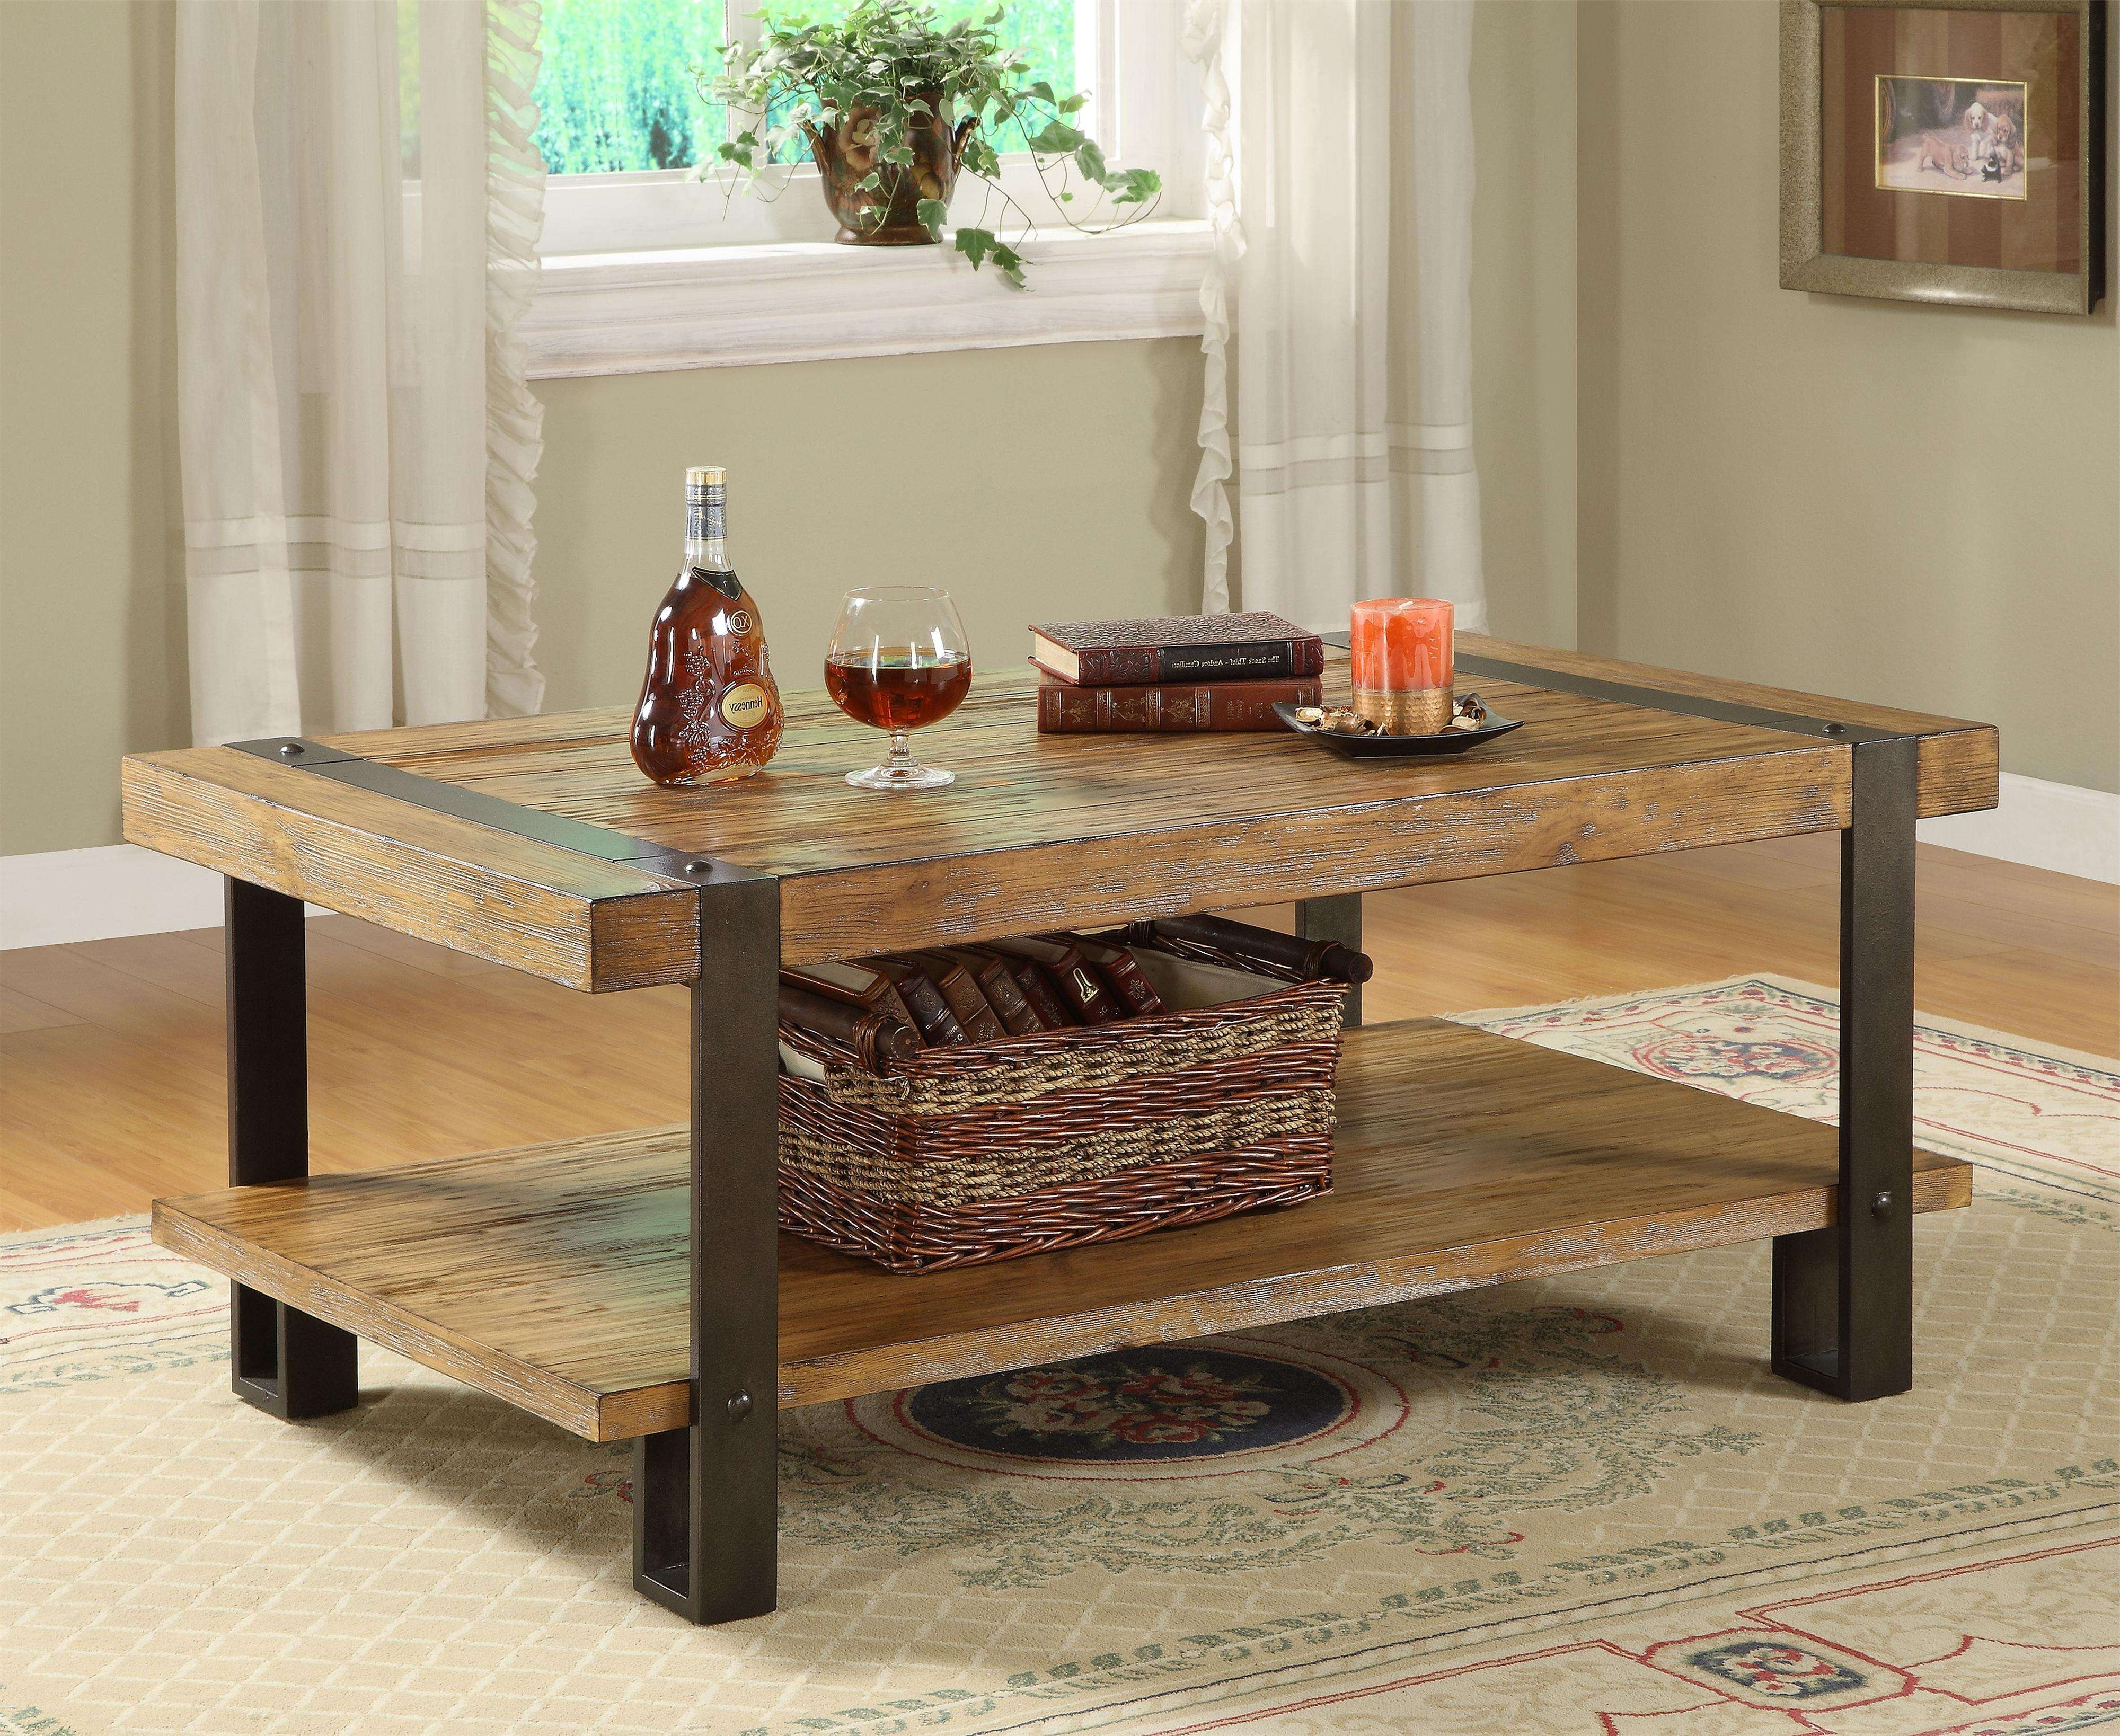 Latest Square Wood Coffee Tables With Storage Regarding Old And Vintage High Low Square Wood Coffee Table With Shelves And (View 15 of 20)